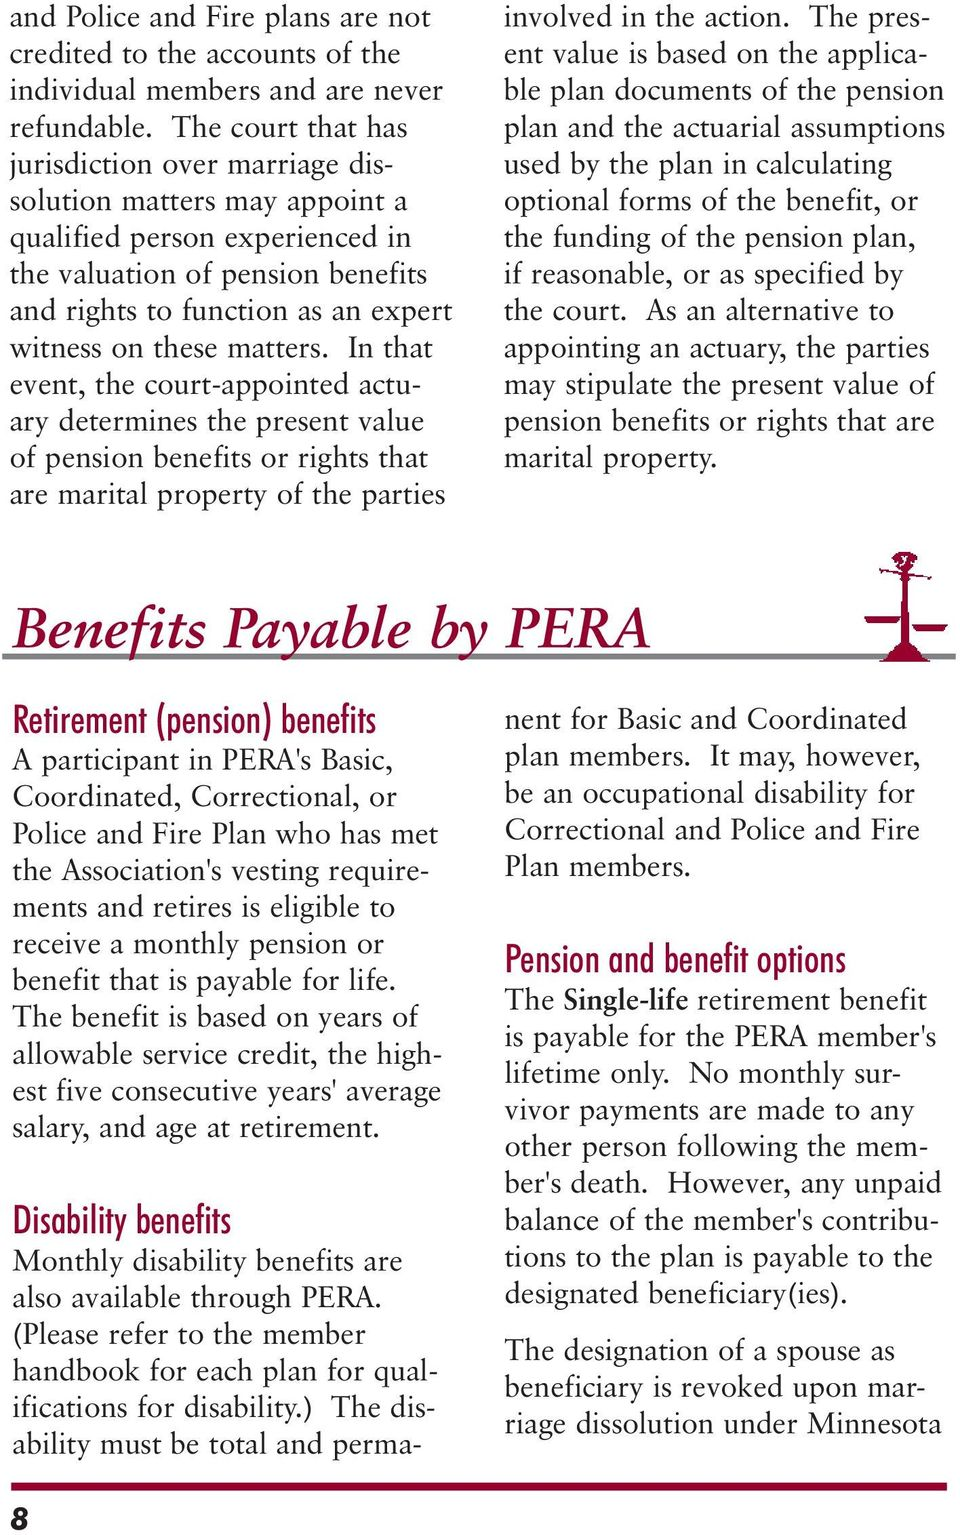 matters. In that event, the court-appointed actuary determines the present value of pension benefits or rights that are marital property of the parties involved in the action.